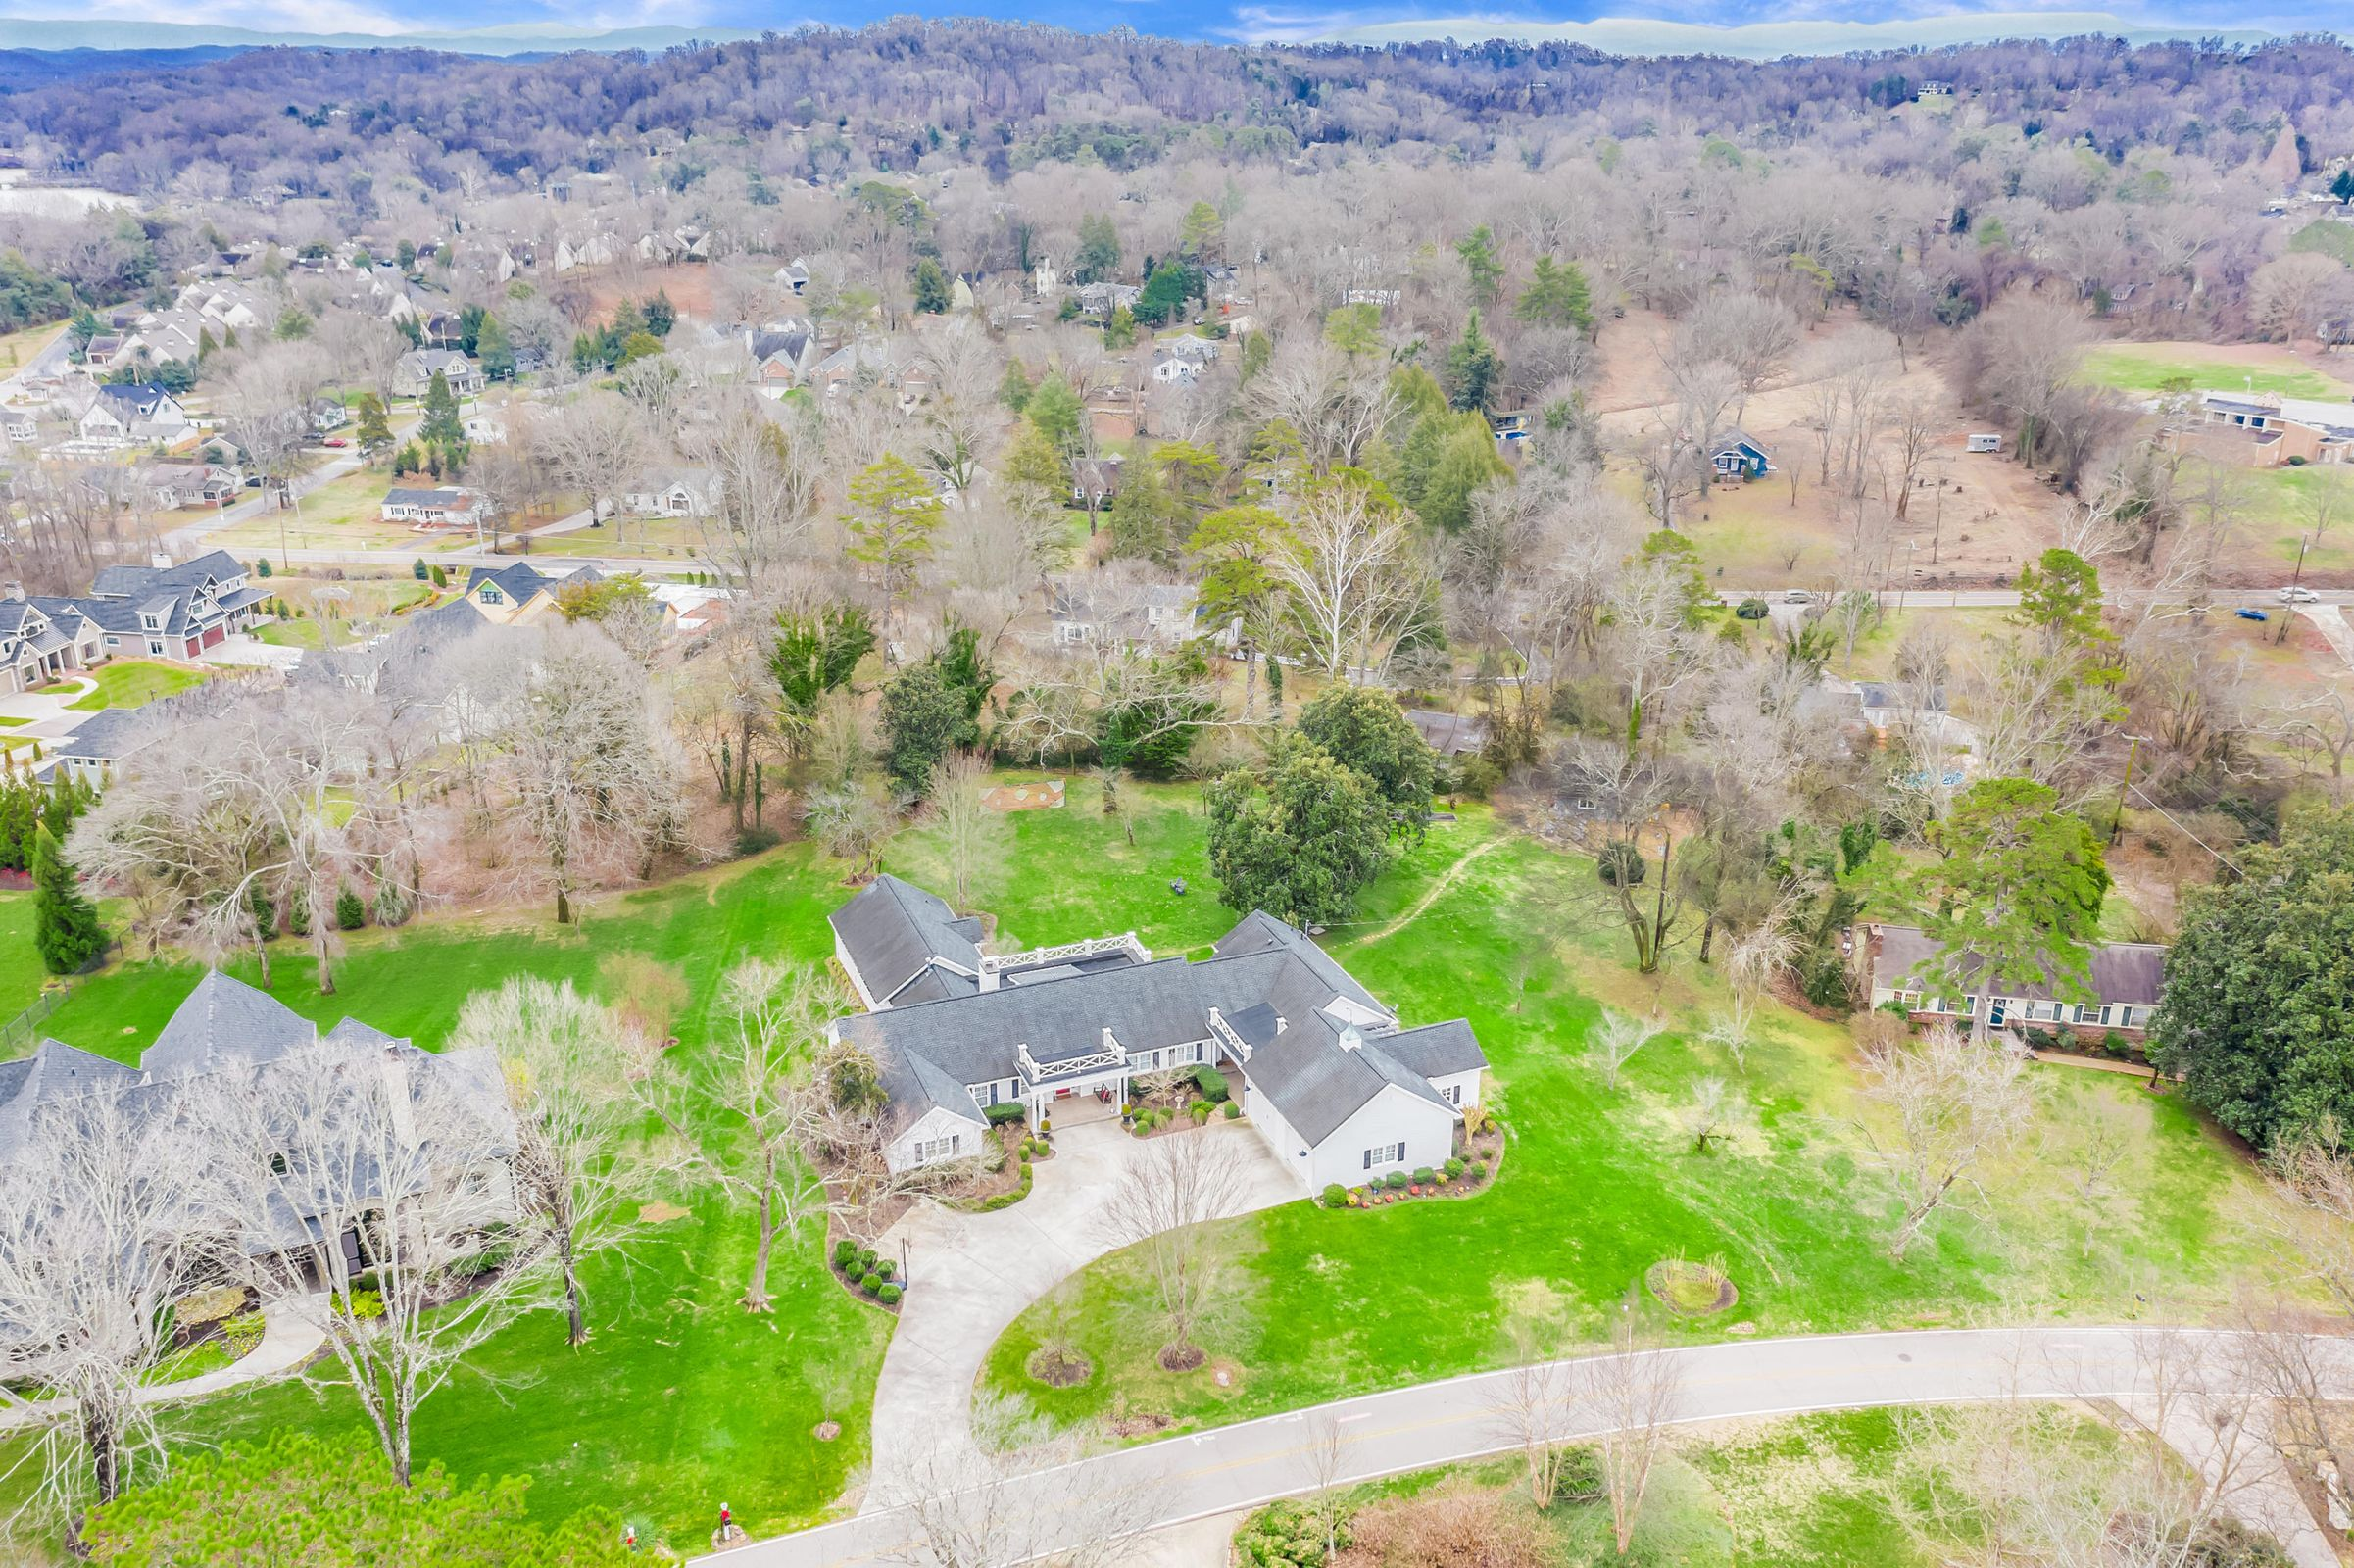 6612StoneMill-front lot